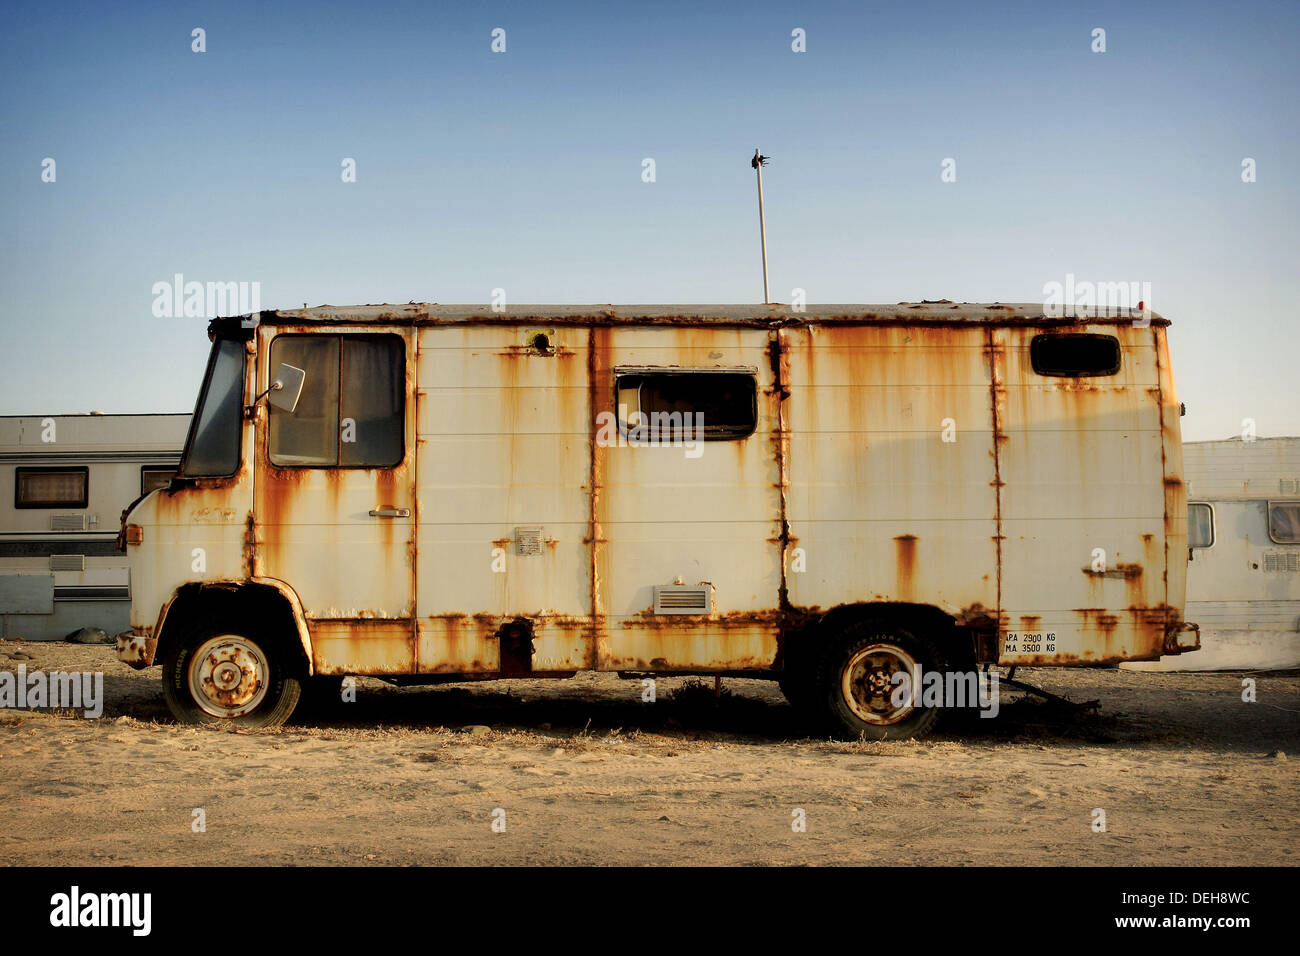 Old mobile home. Fuerteventura, Canary Islands, Spain Stock ... on mobile cars commercial, mobile health, heales is home commercial,